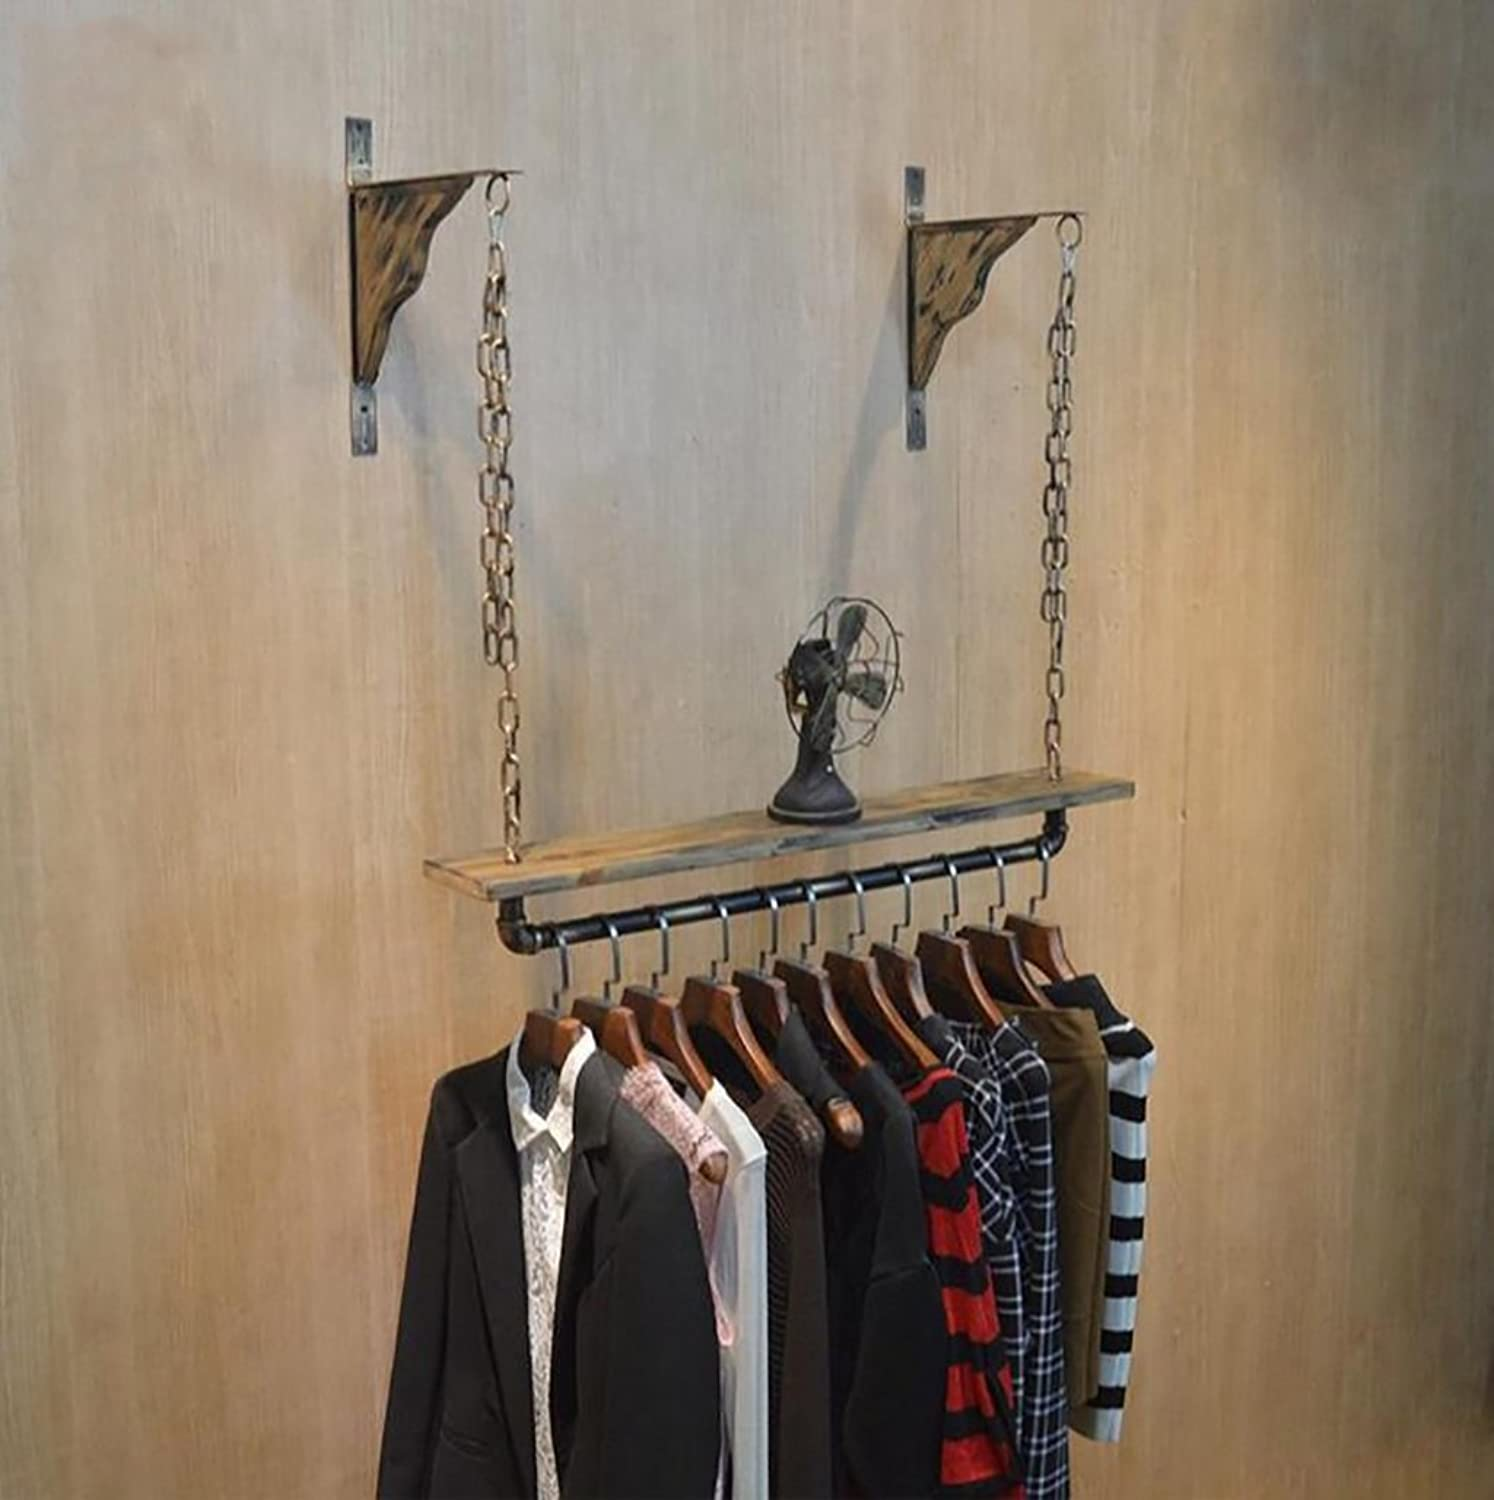 fb893f0111f9 Coat Racks, Clothing 90CM) Size B, (color Stand Display Hanging ...